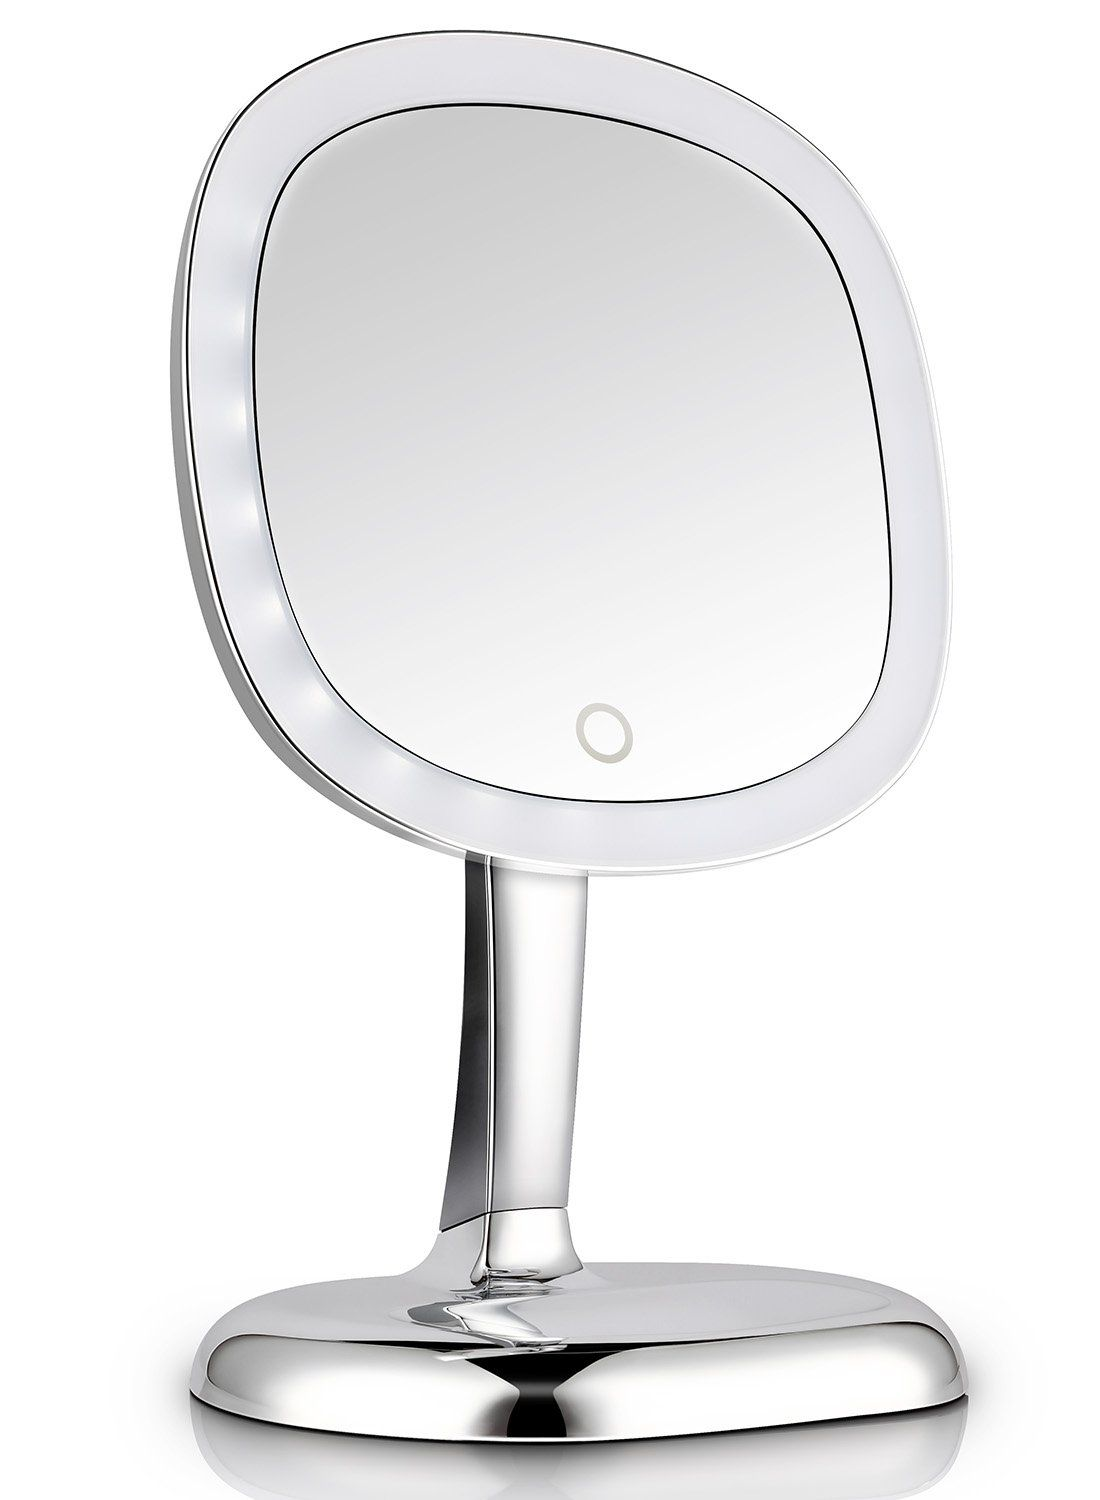 Portable Vanity Mirror With Lights Stunning 7X Magnifying Lighted Makeup Mirror 9 Inch Cordless Portable Design Inspiration